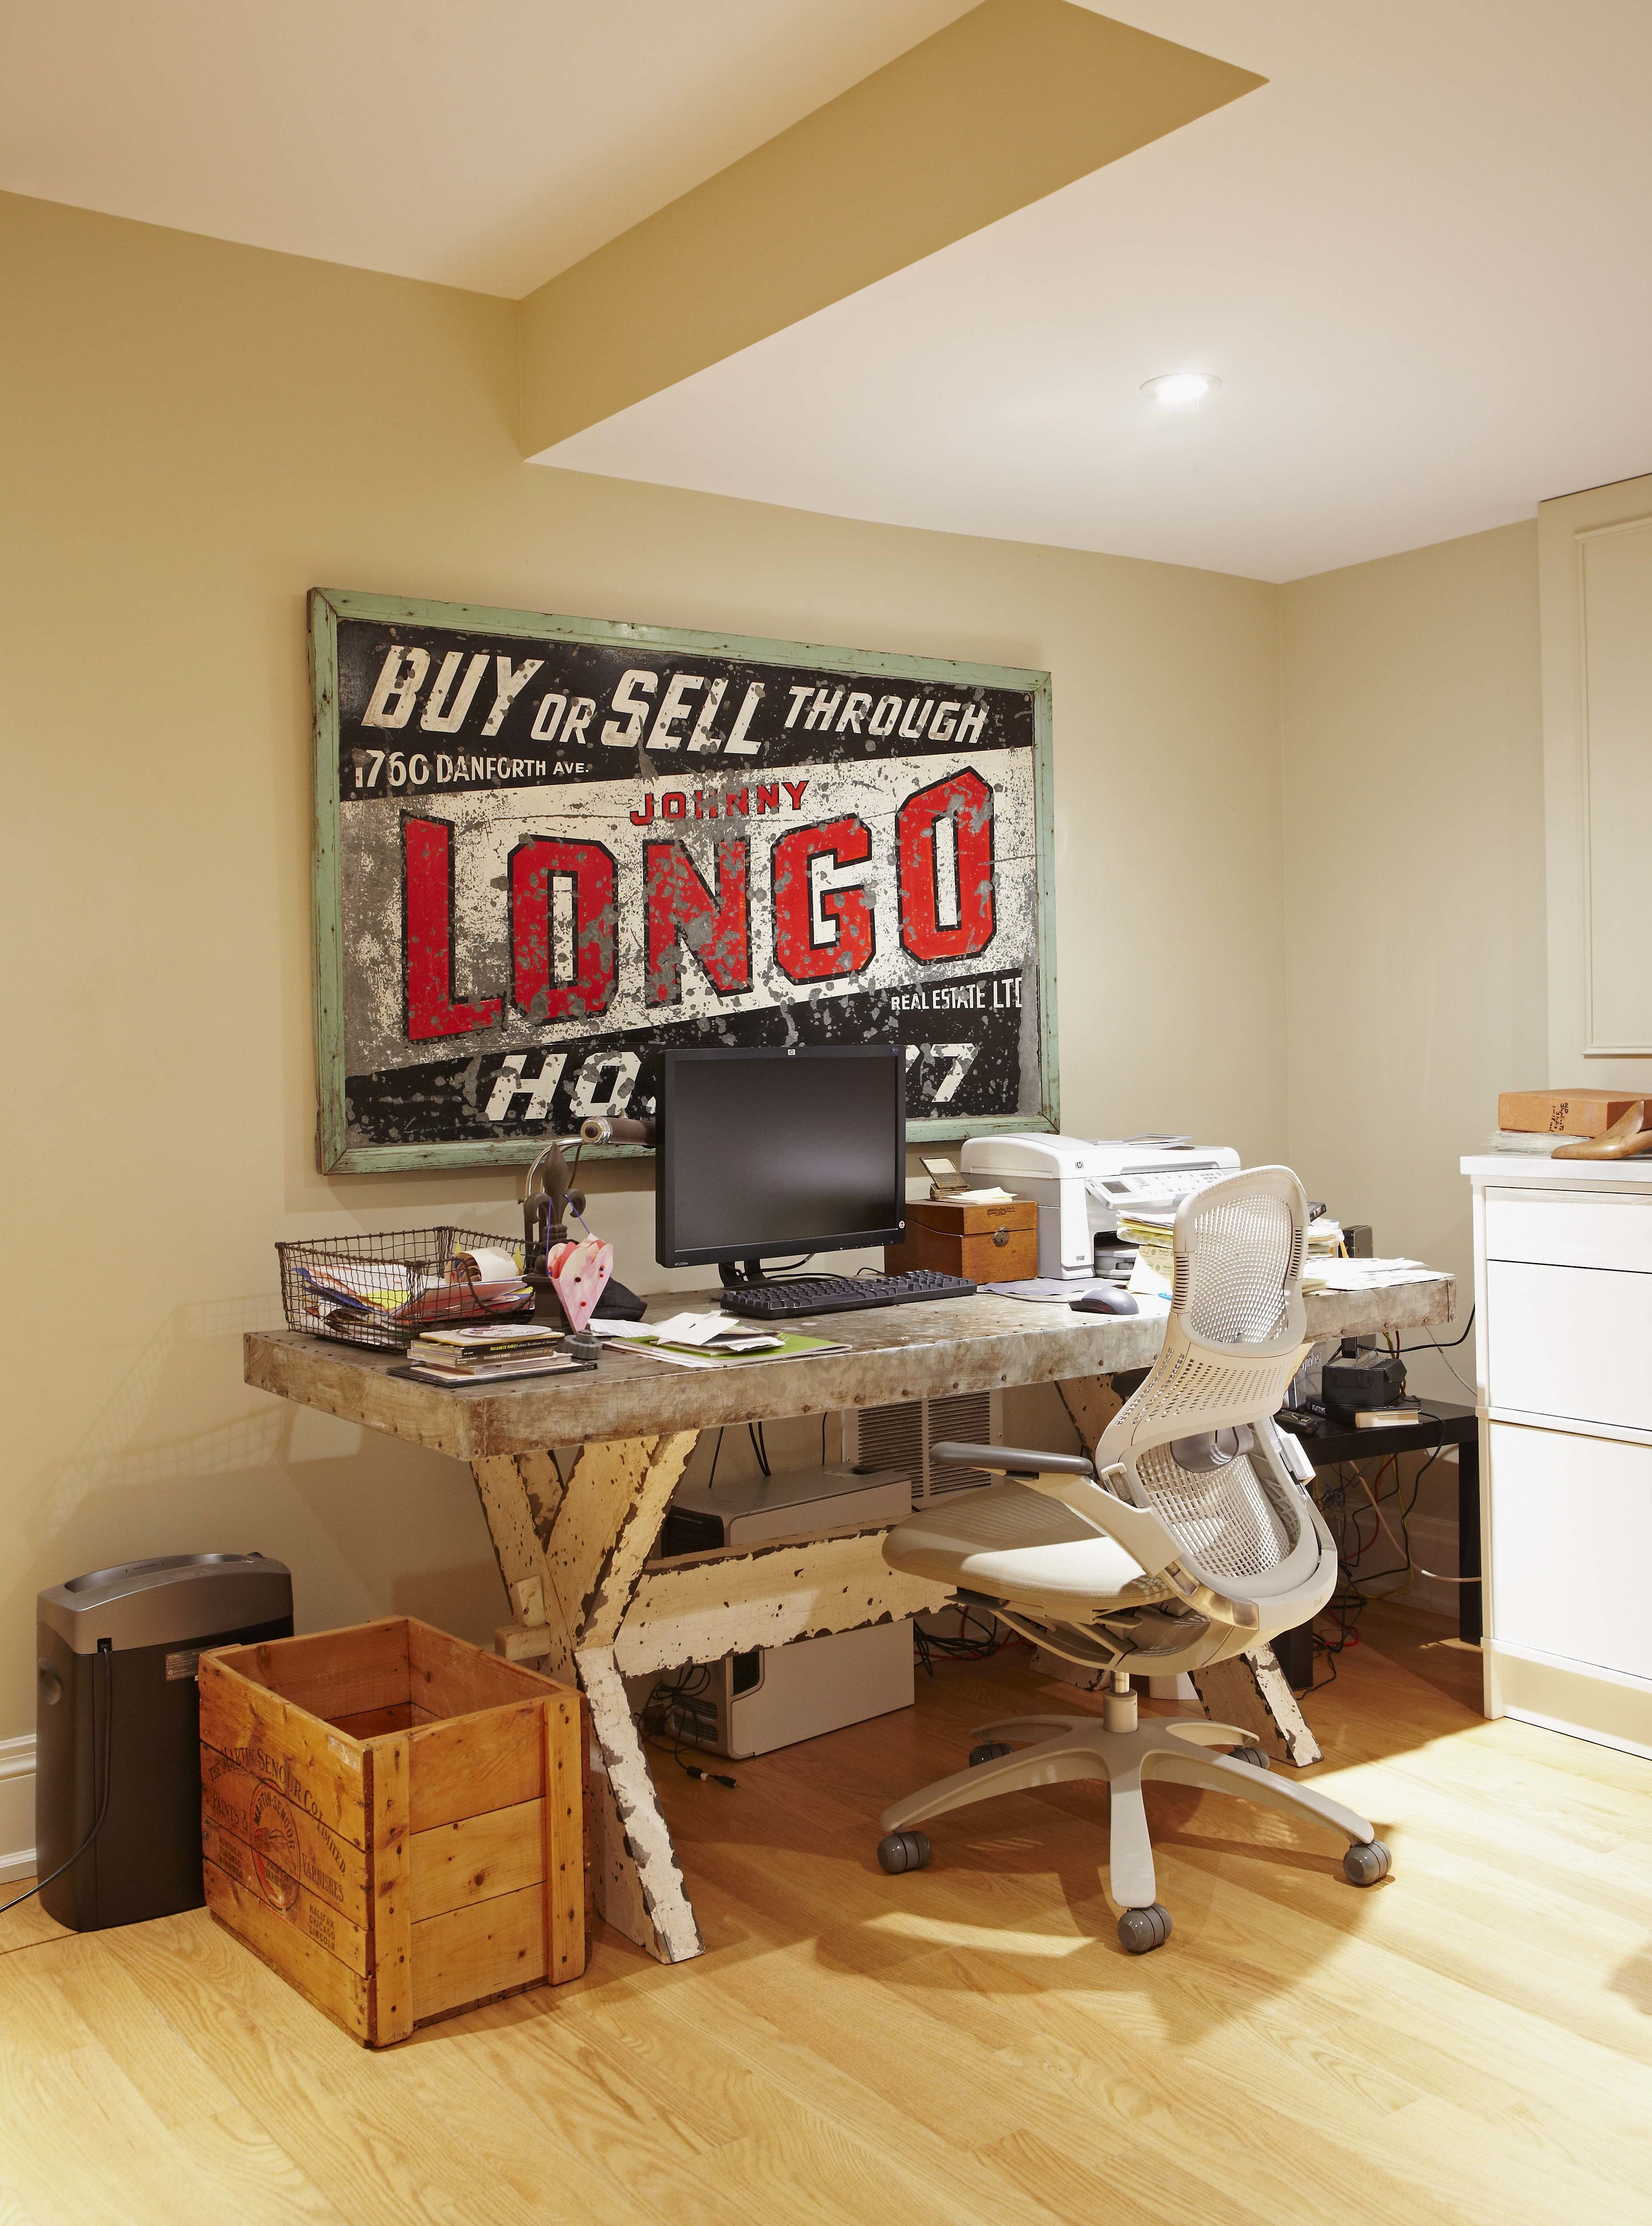 An antique industrial sign and desk provide character to this home office for our client and their family. (Casey Design / Planning Group Inc. - photograph by Michael Graydon)